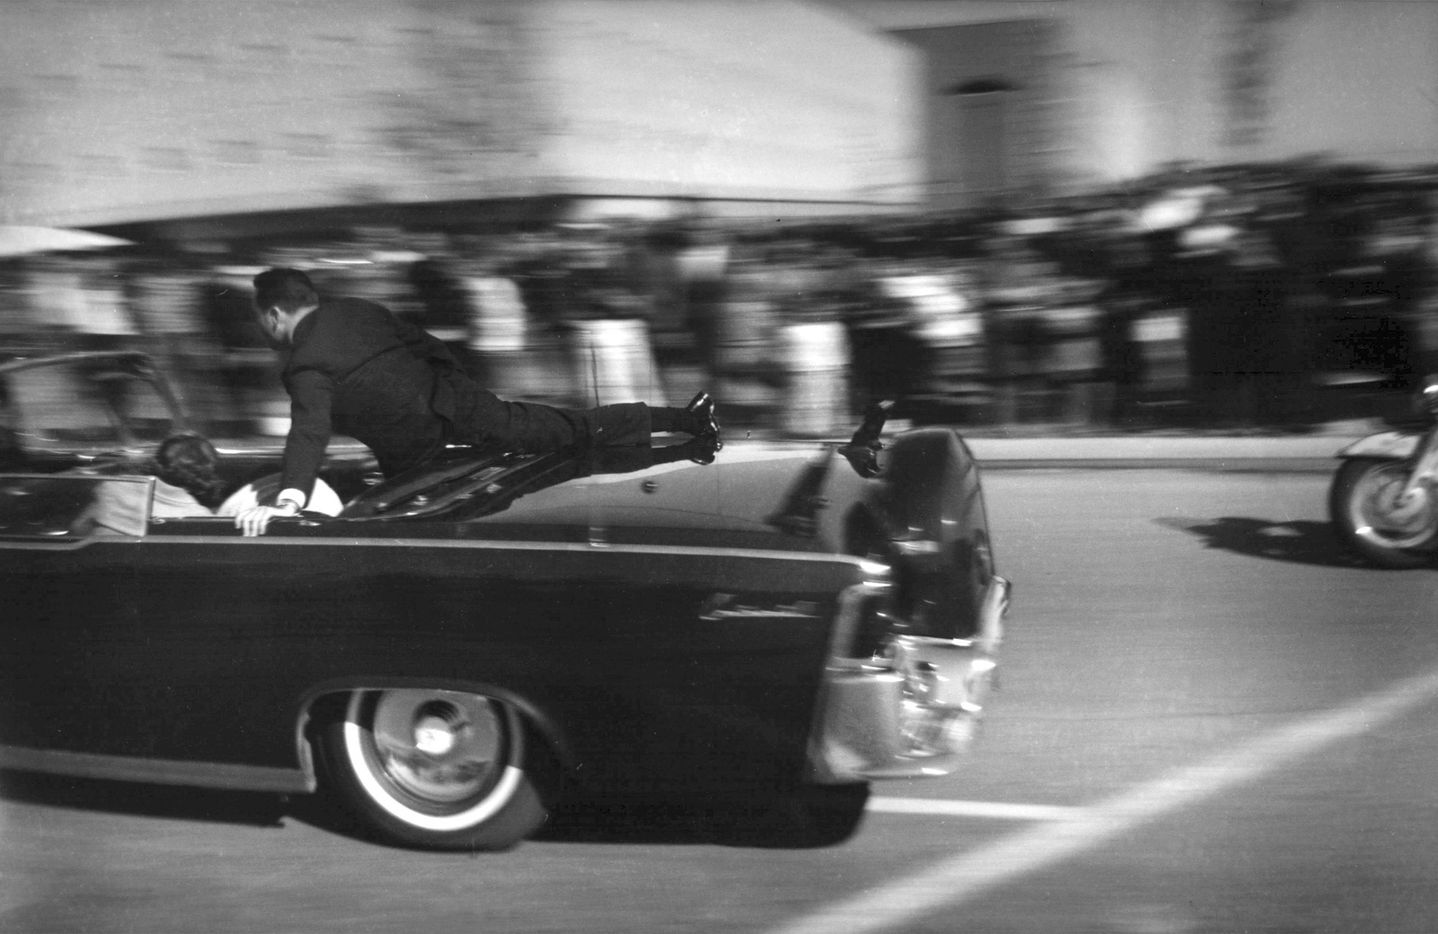 The limousine carrying a mortally wounded president races toward the hospital seconds after he was shot in Dallas. Secret Service agent Clinton Hill is riding on the back of the car.